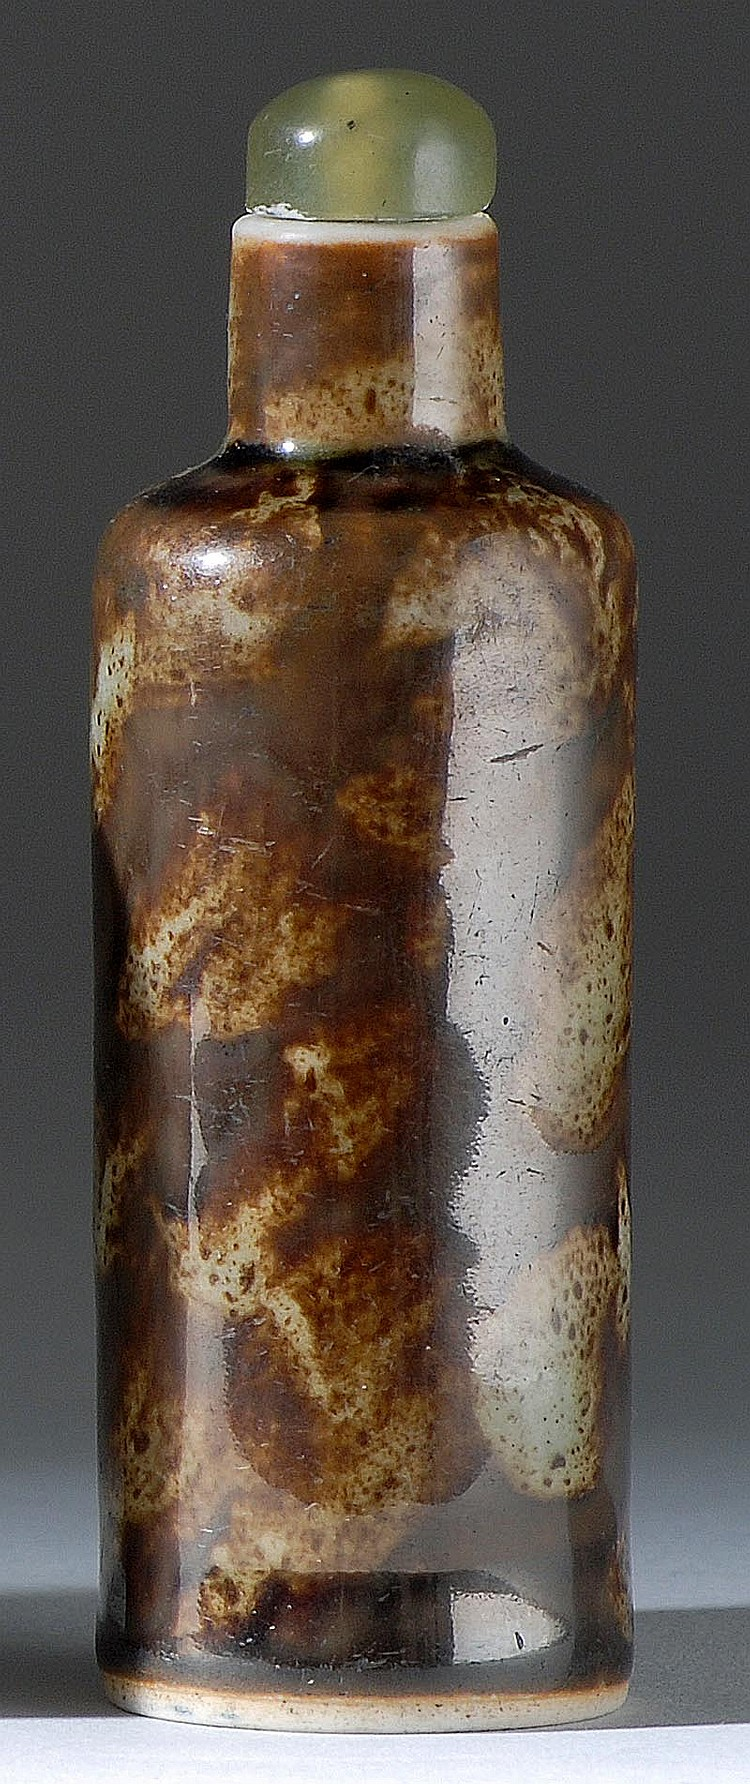 PORCELAIN SNUFF BOTTLE In cylinder form with brown and gray glaze simulated tortoiseshell. Height 3